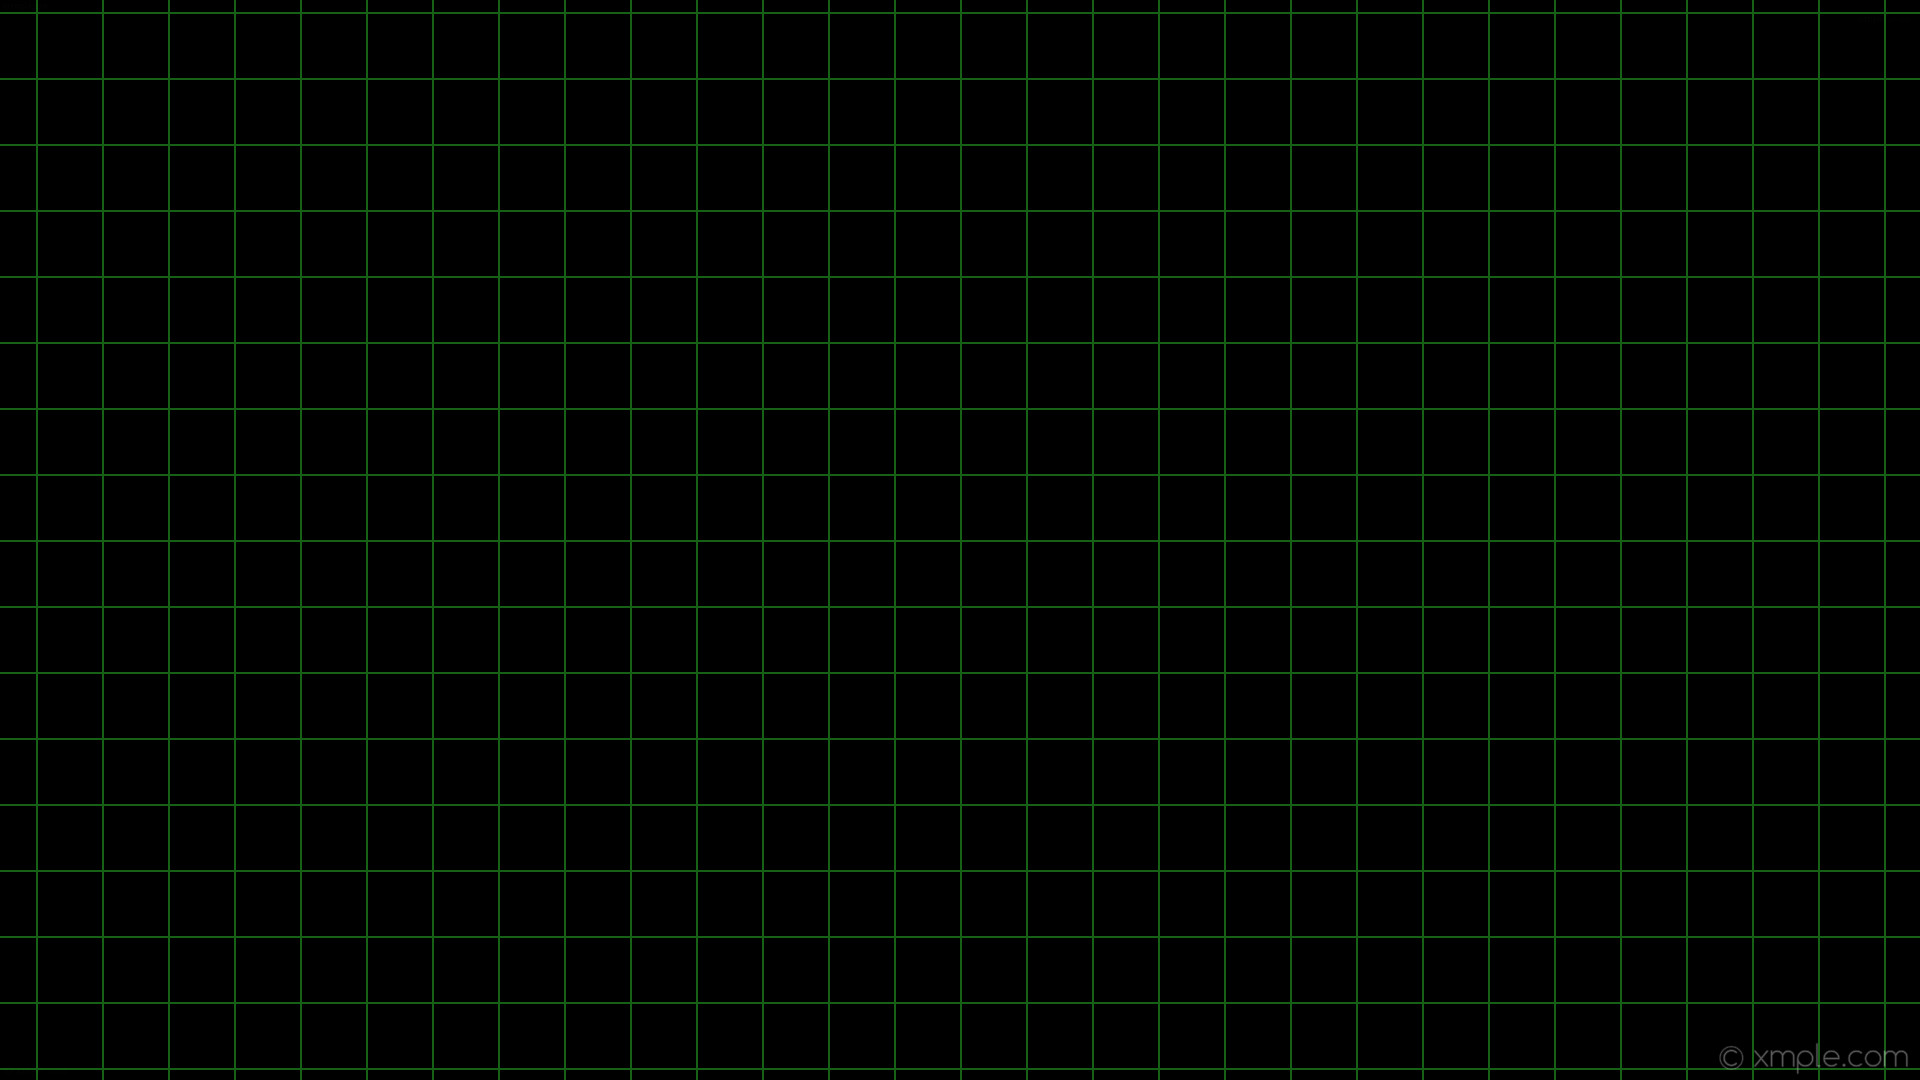 wallpaper black green graph paper grid forest green #000000 #228b22 0° 2px  66px